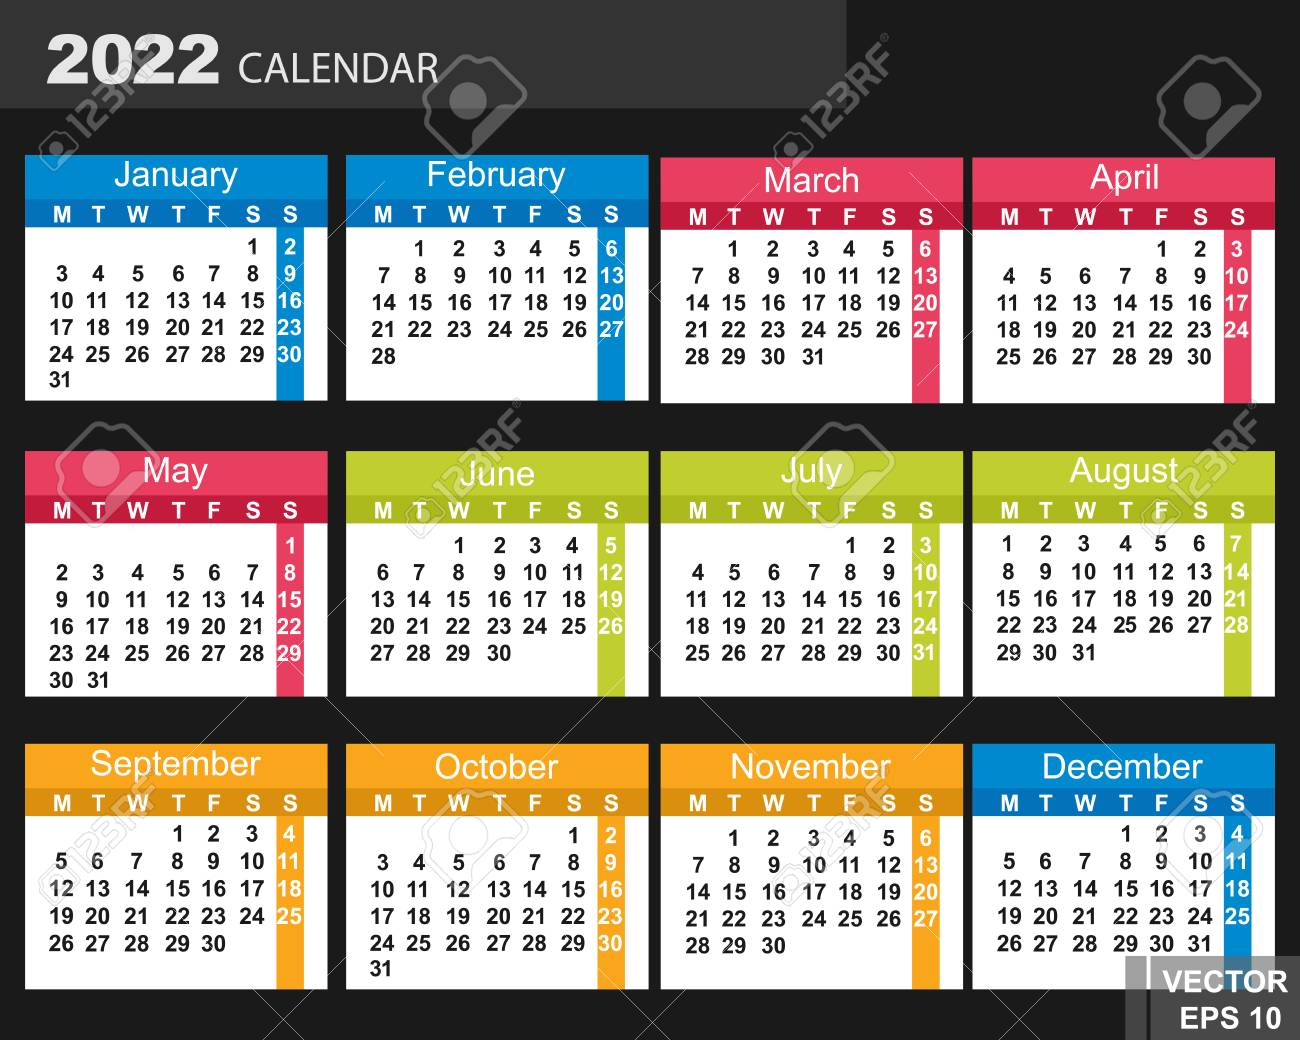 Uw Calendar 2022.The Calendar New Year 2022 Date For Your Design Royalty Free Cliparts Vectors And Stock Illustration Image 71739066